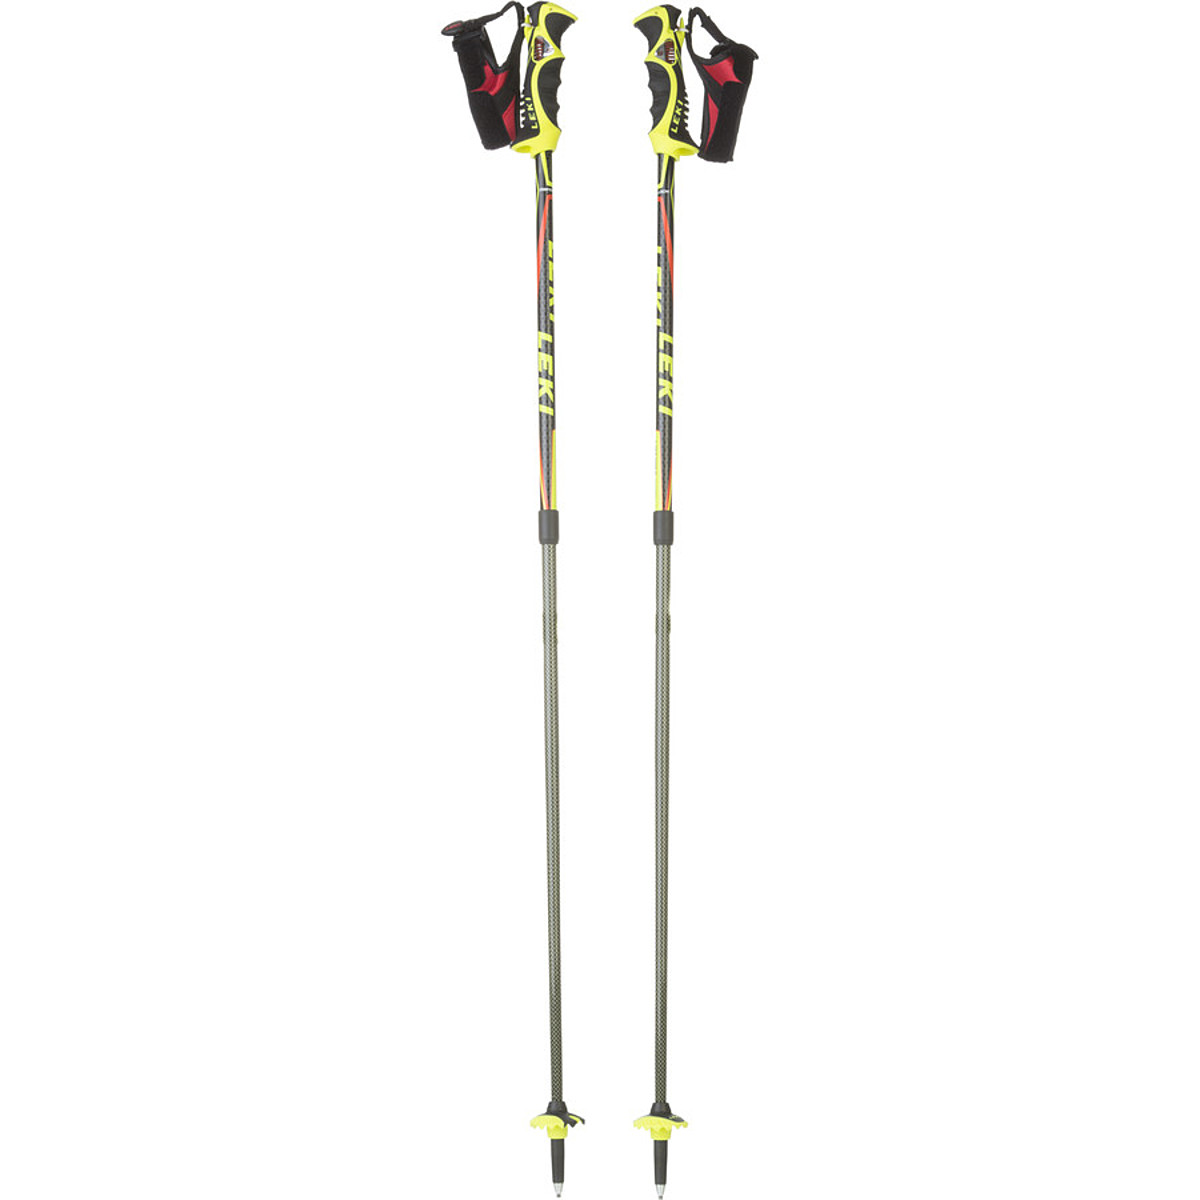 photo of a Leki ski/snowshoe product